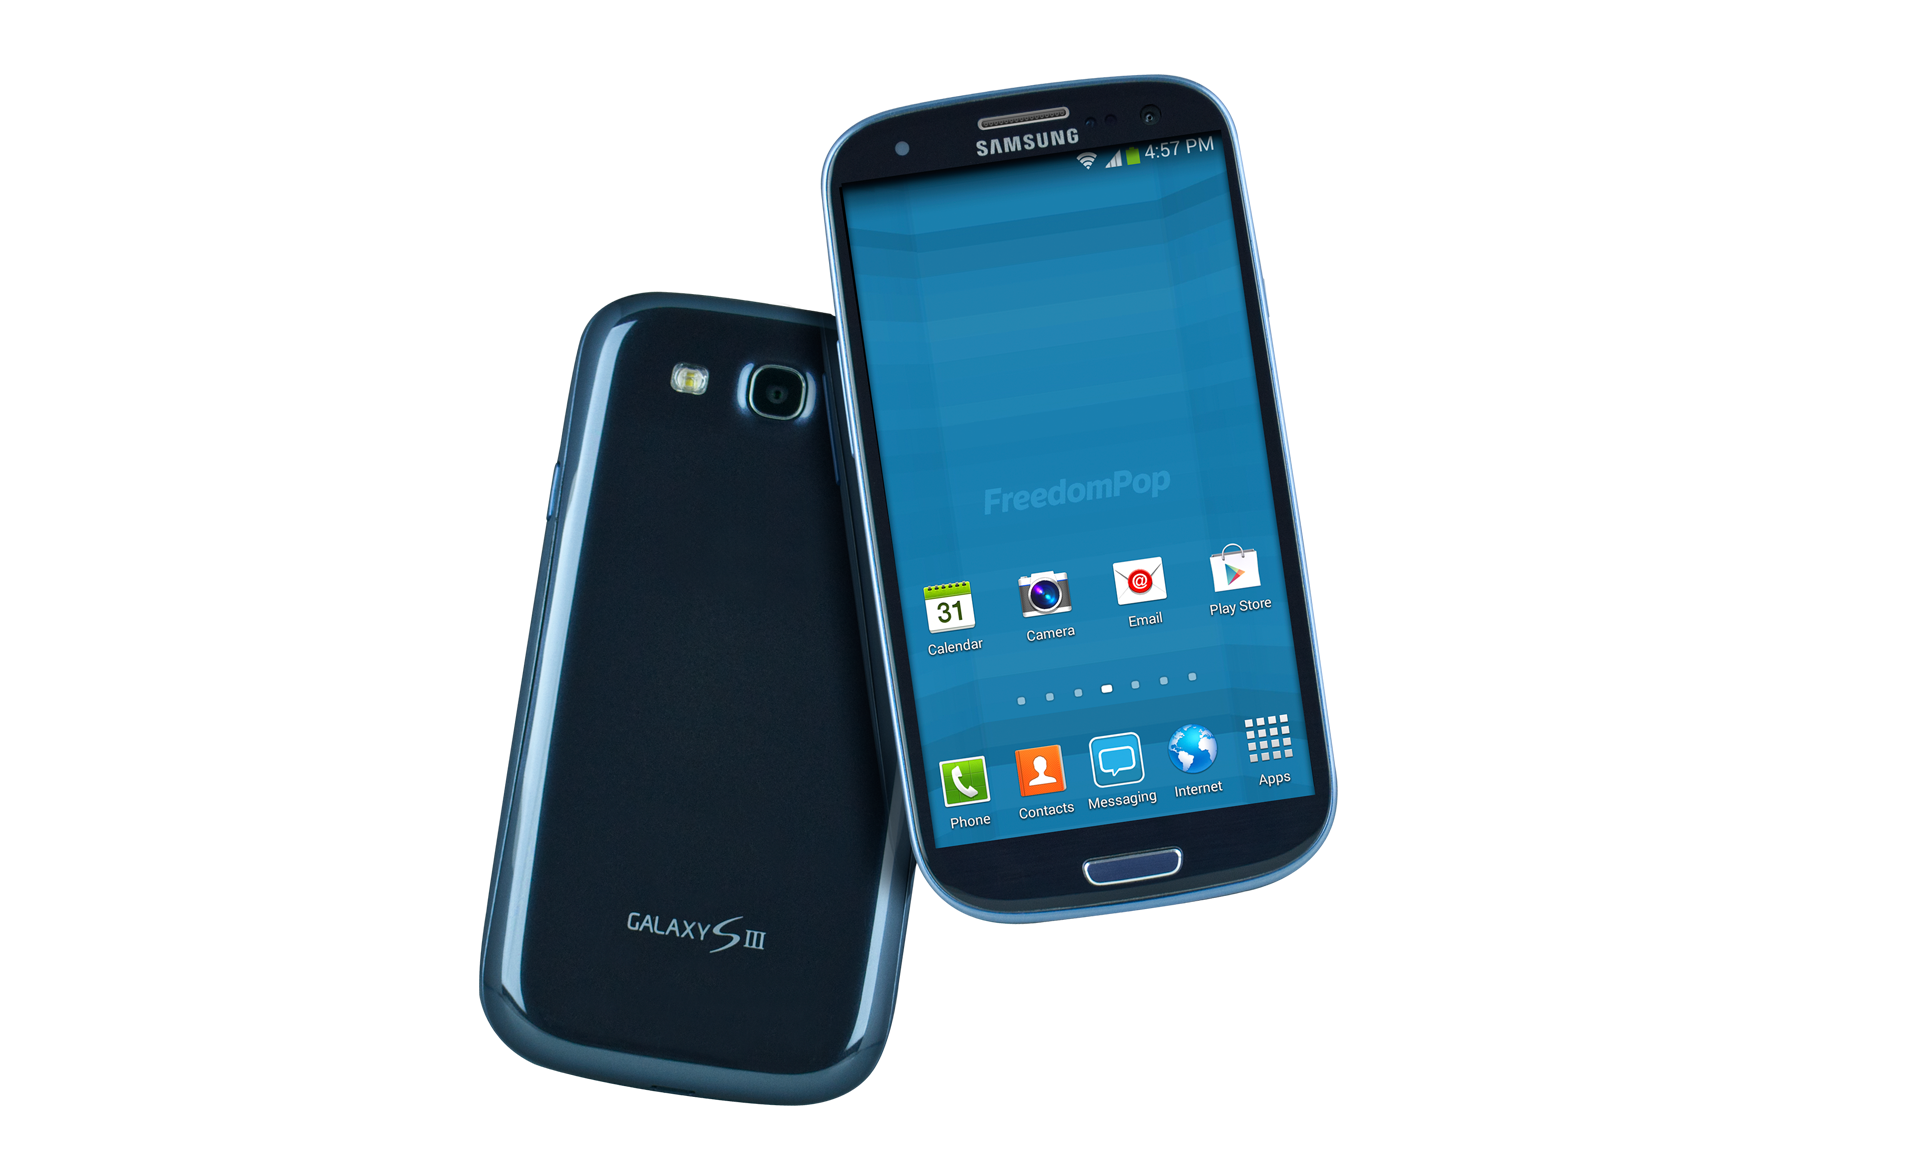 Freedompop Early Prime Day Deals Samsung Galaxy Siii Or